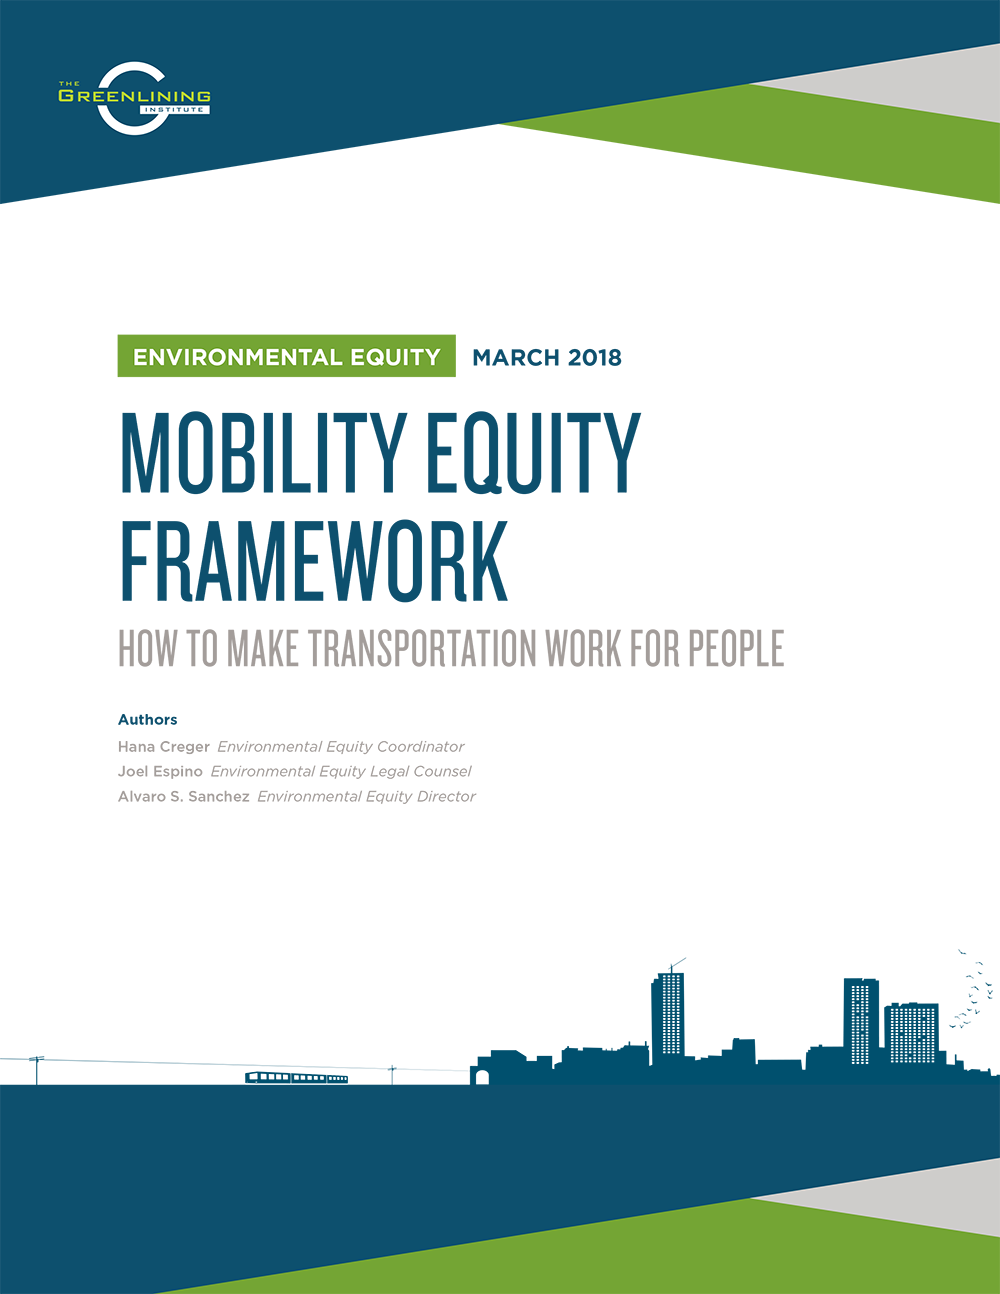 Mobility Equity Framework: How to make transportation work for people